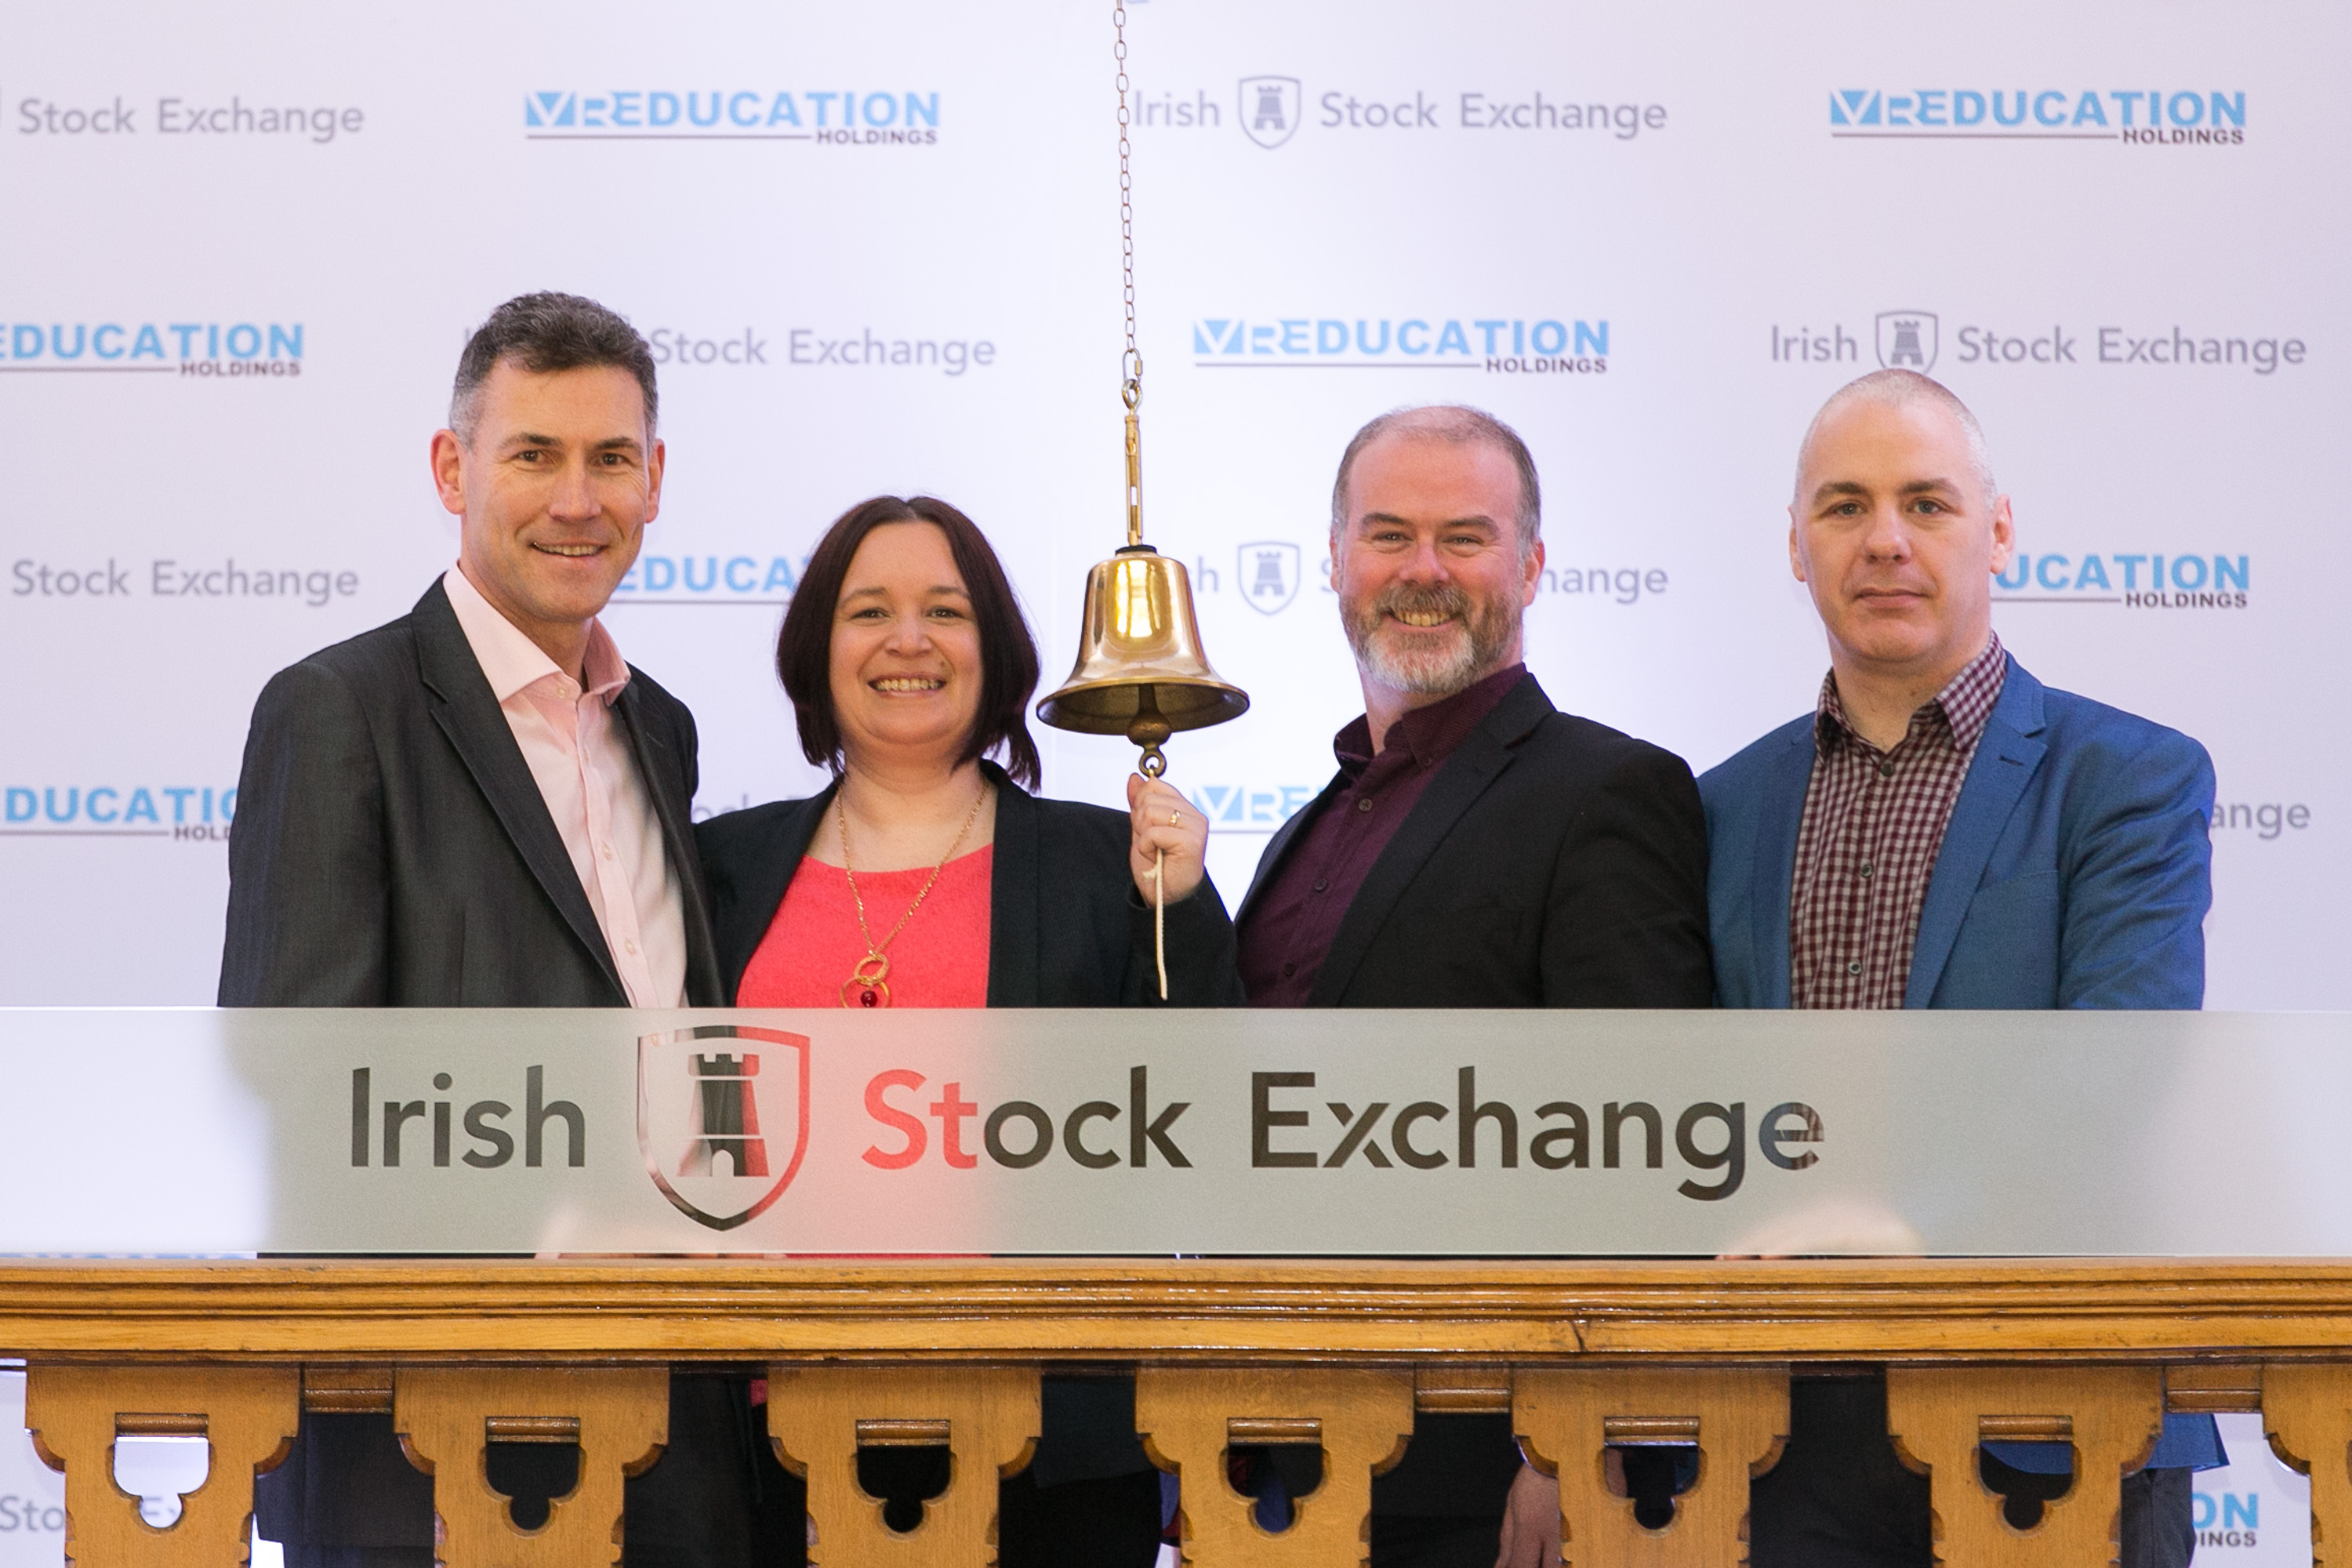 Sandra Whelan Co-founder of Immersive VR Education rings the bell at the Irish Stock Exchange with (L to R)  Eugene Crehan (Director of Programmes CEDRE), Sandra Whelan, Ciaran Cullen (Manager ArcLabs) and David Whelan (CEO and Founder) Immersive VR Education                 (Photograph courtesy of SON Photographic)